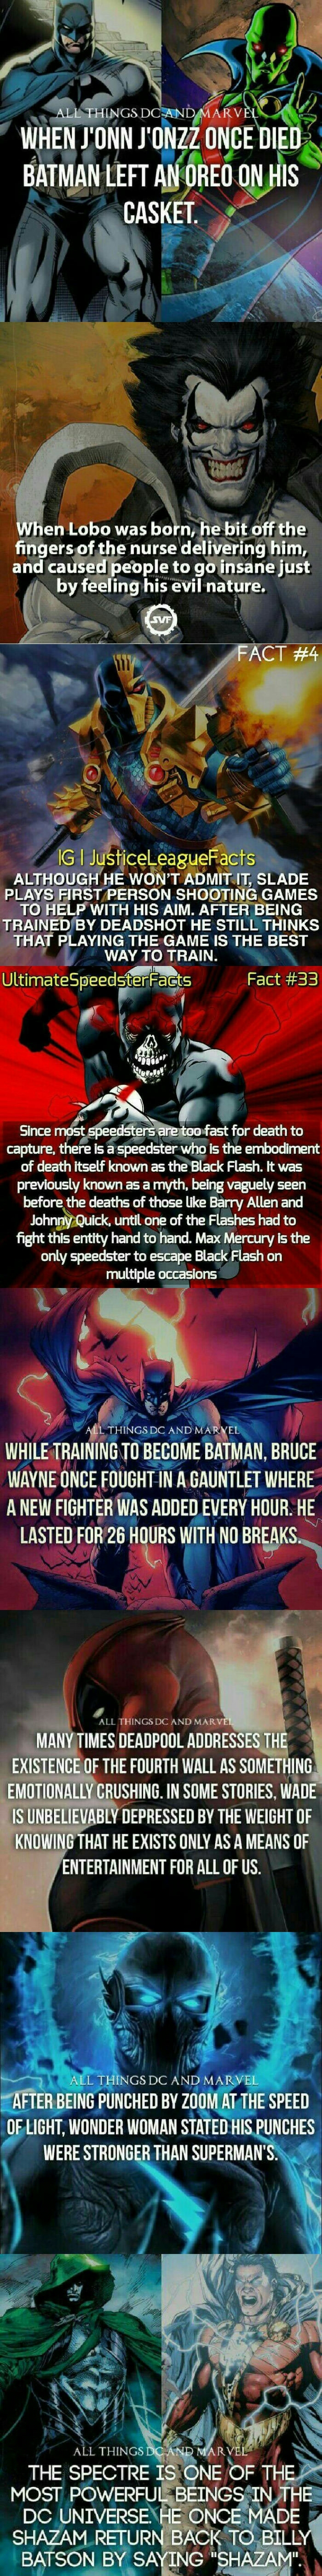 Marvel & DC facts